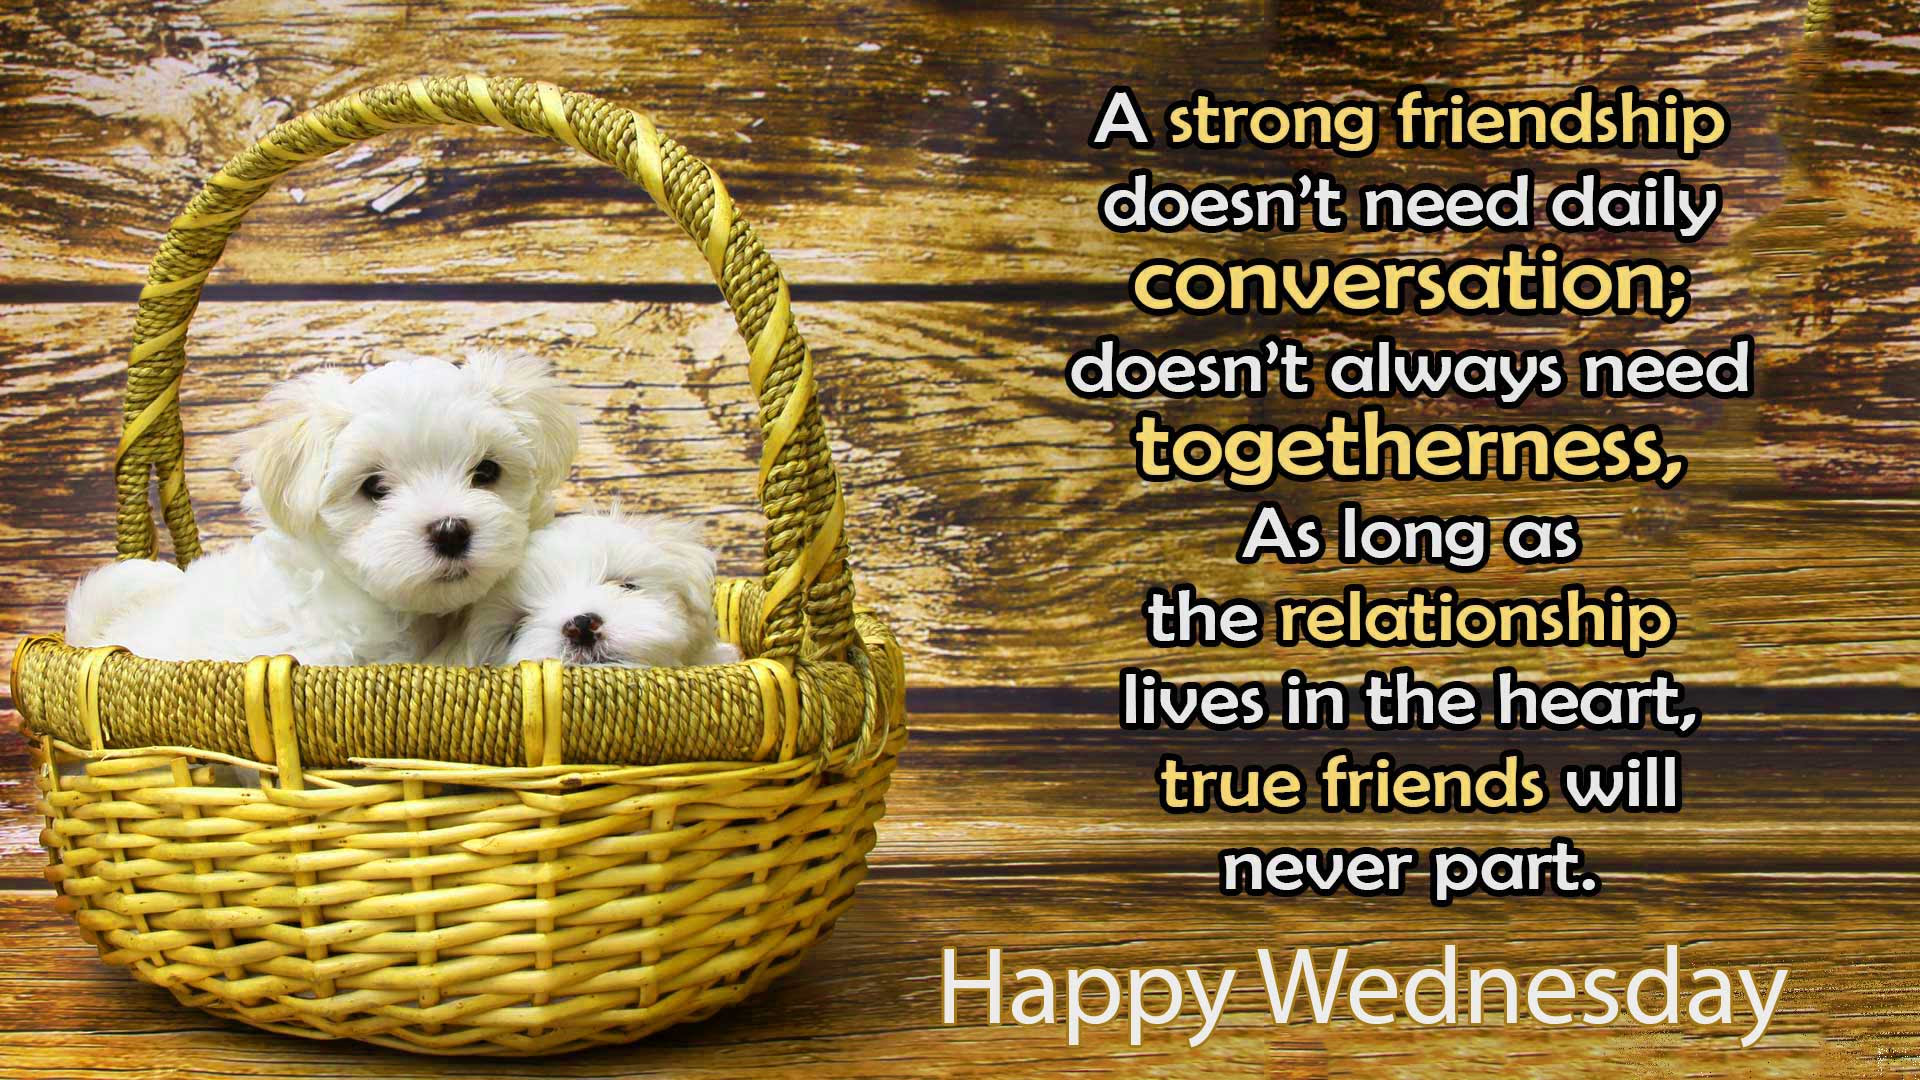 341 Wednesday Good Morning Wishes Images Photo Pics Wallpaper Hd